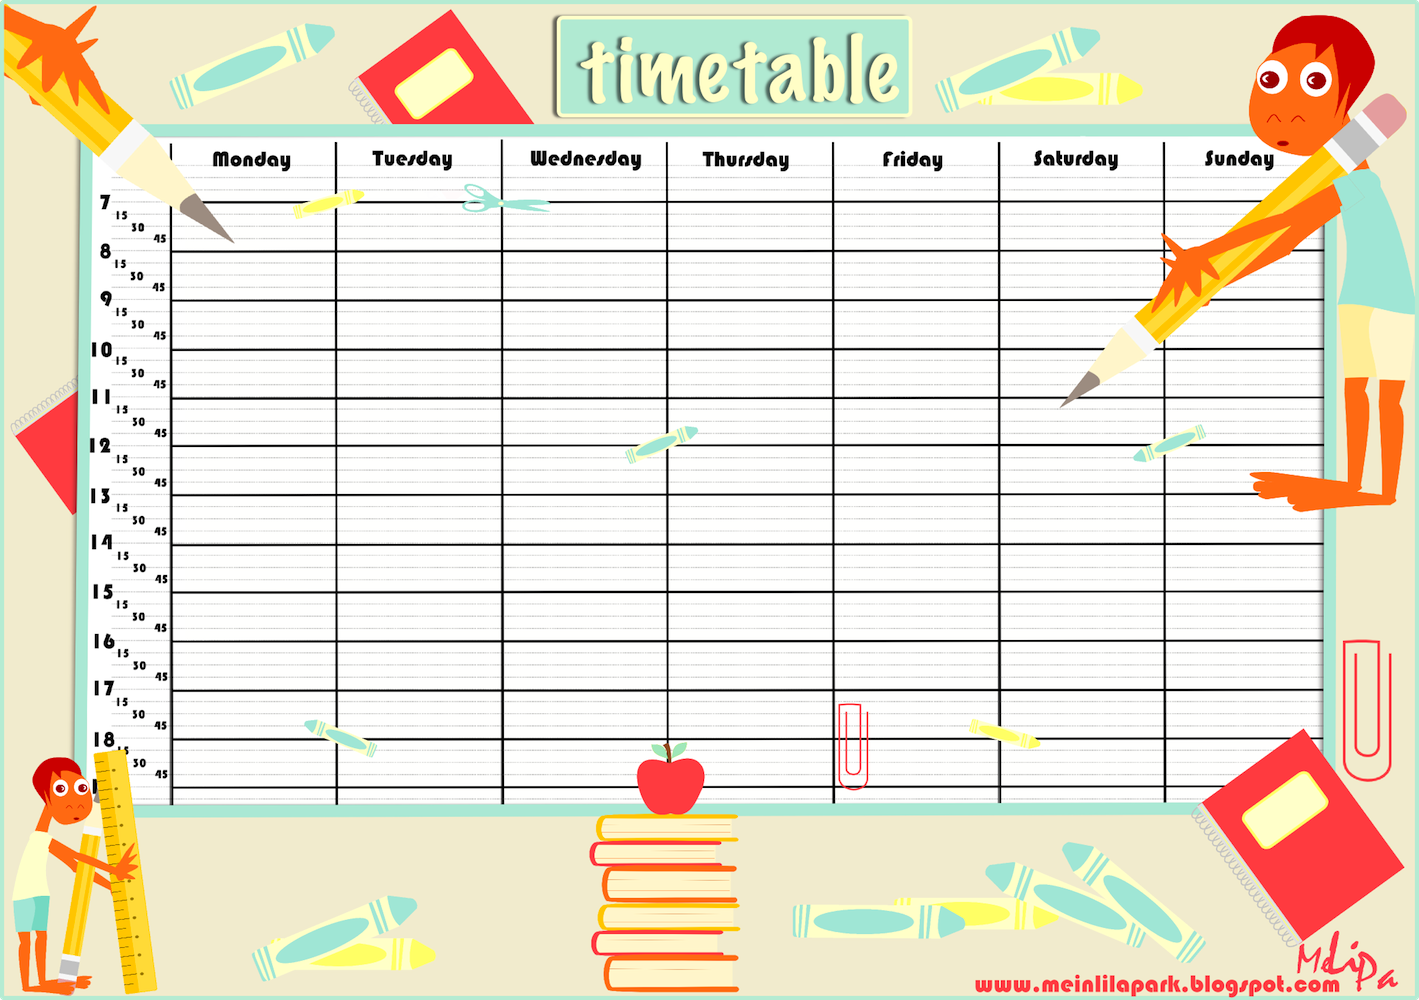 College Timetable Template best photos of weekly college schedule – Timetable Template